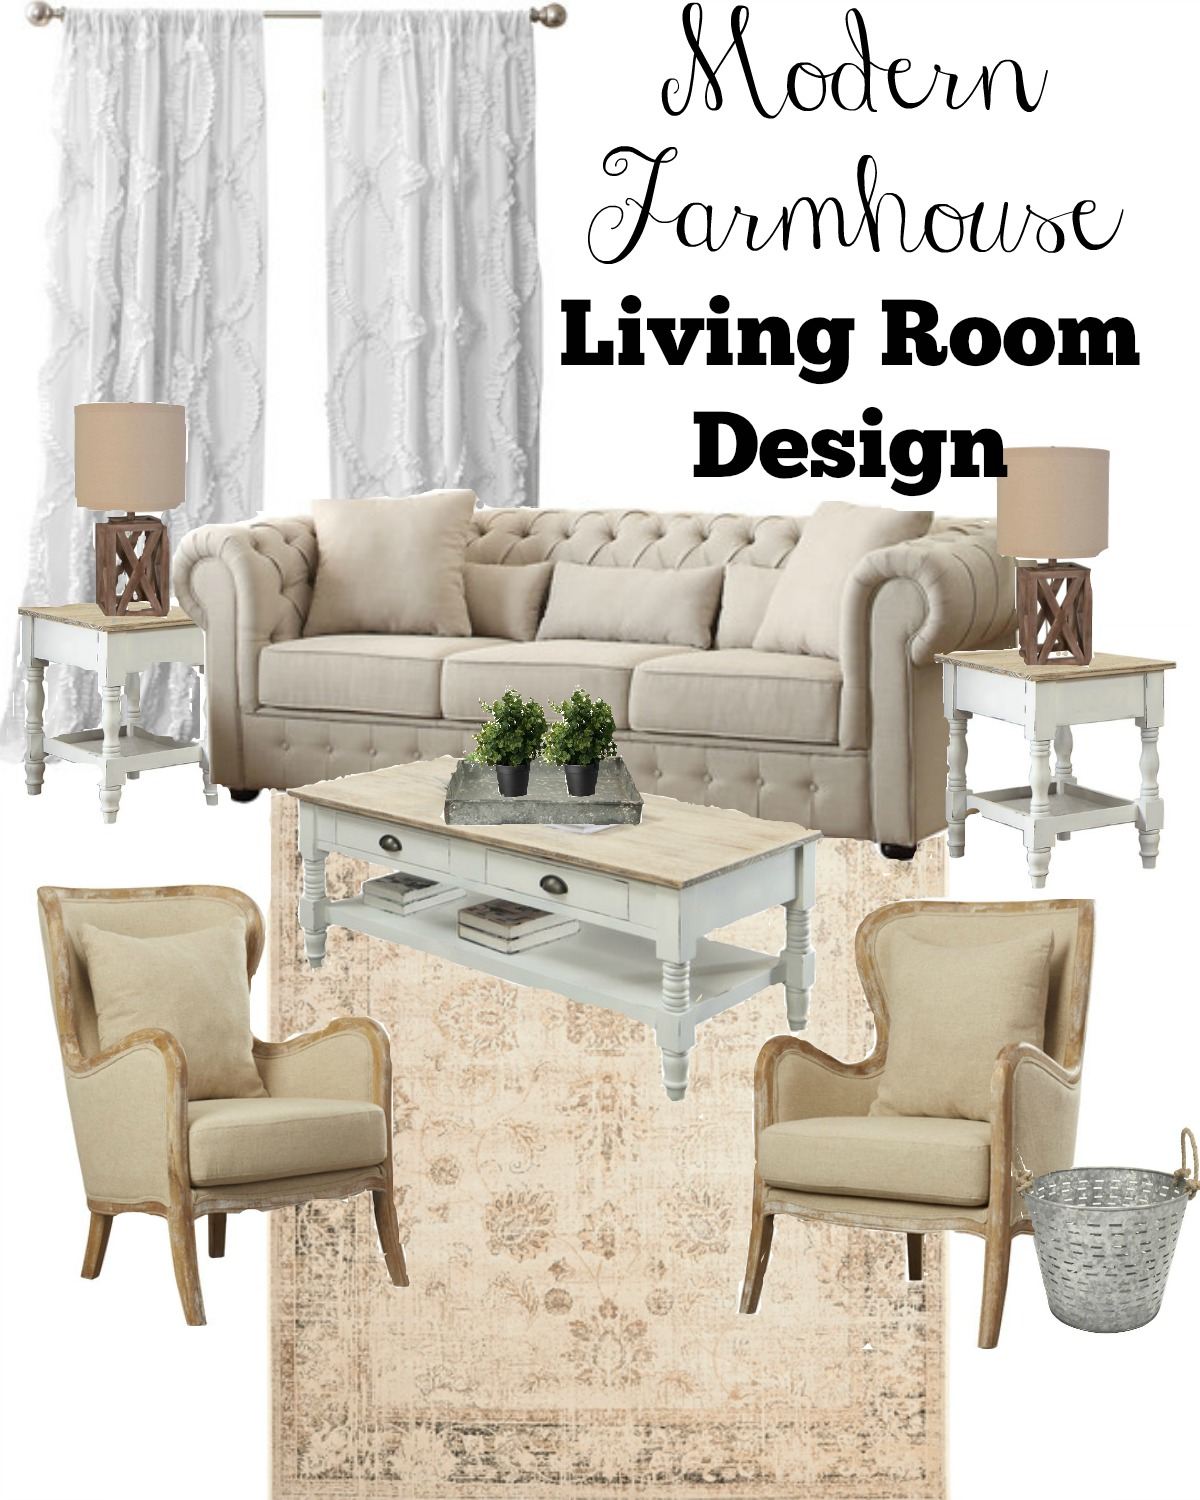 New 30 modern farmhouse living room decorating design of Living room furniture design ideas